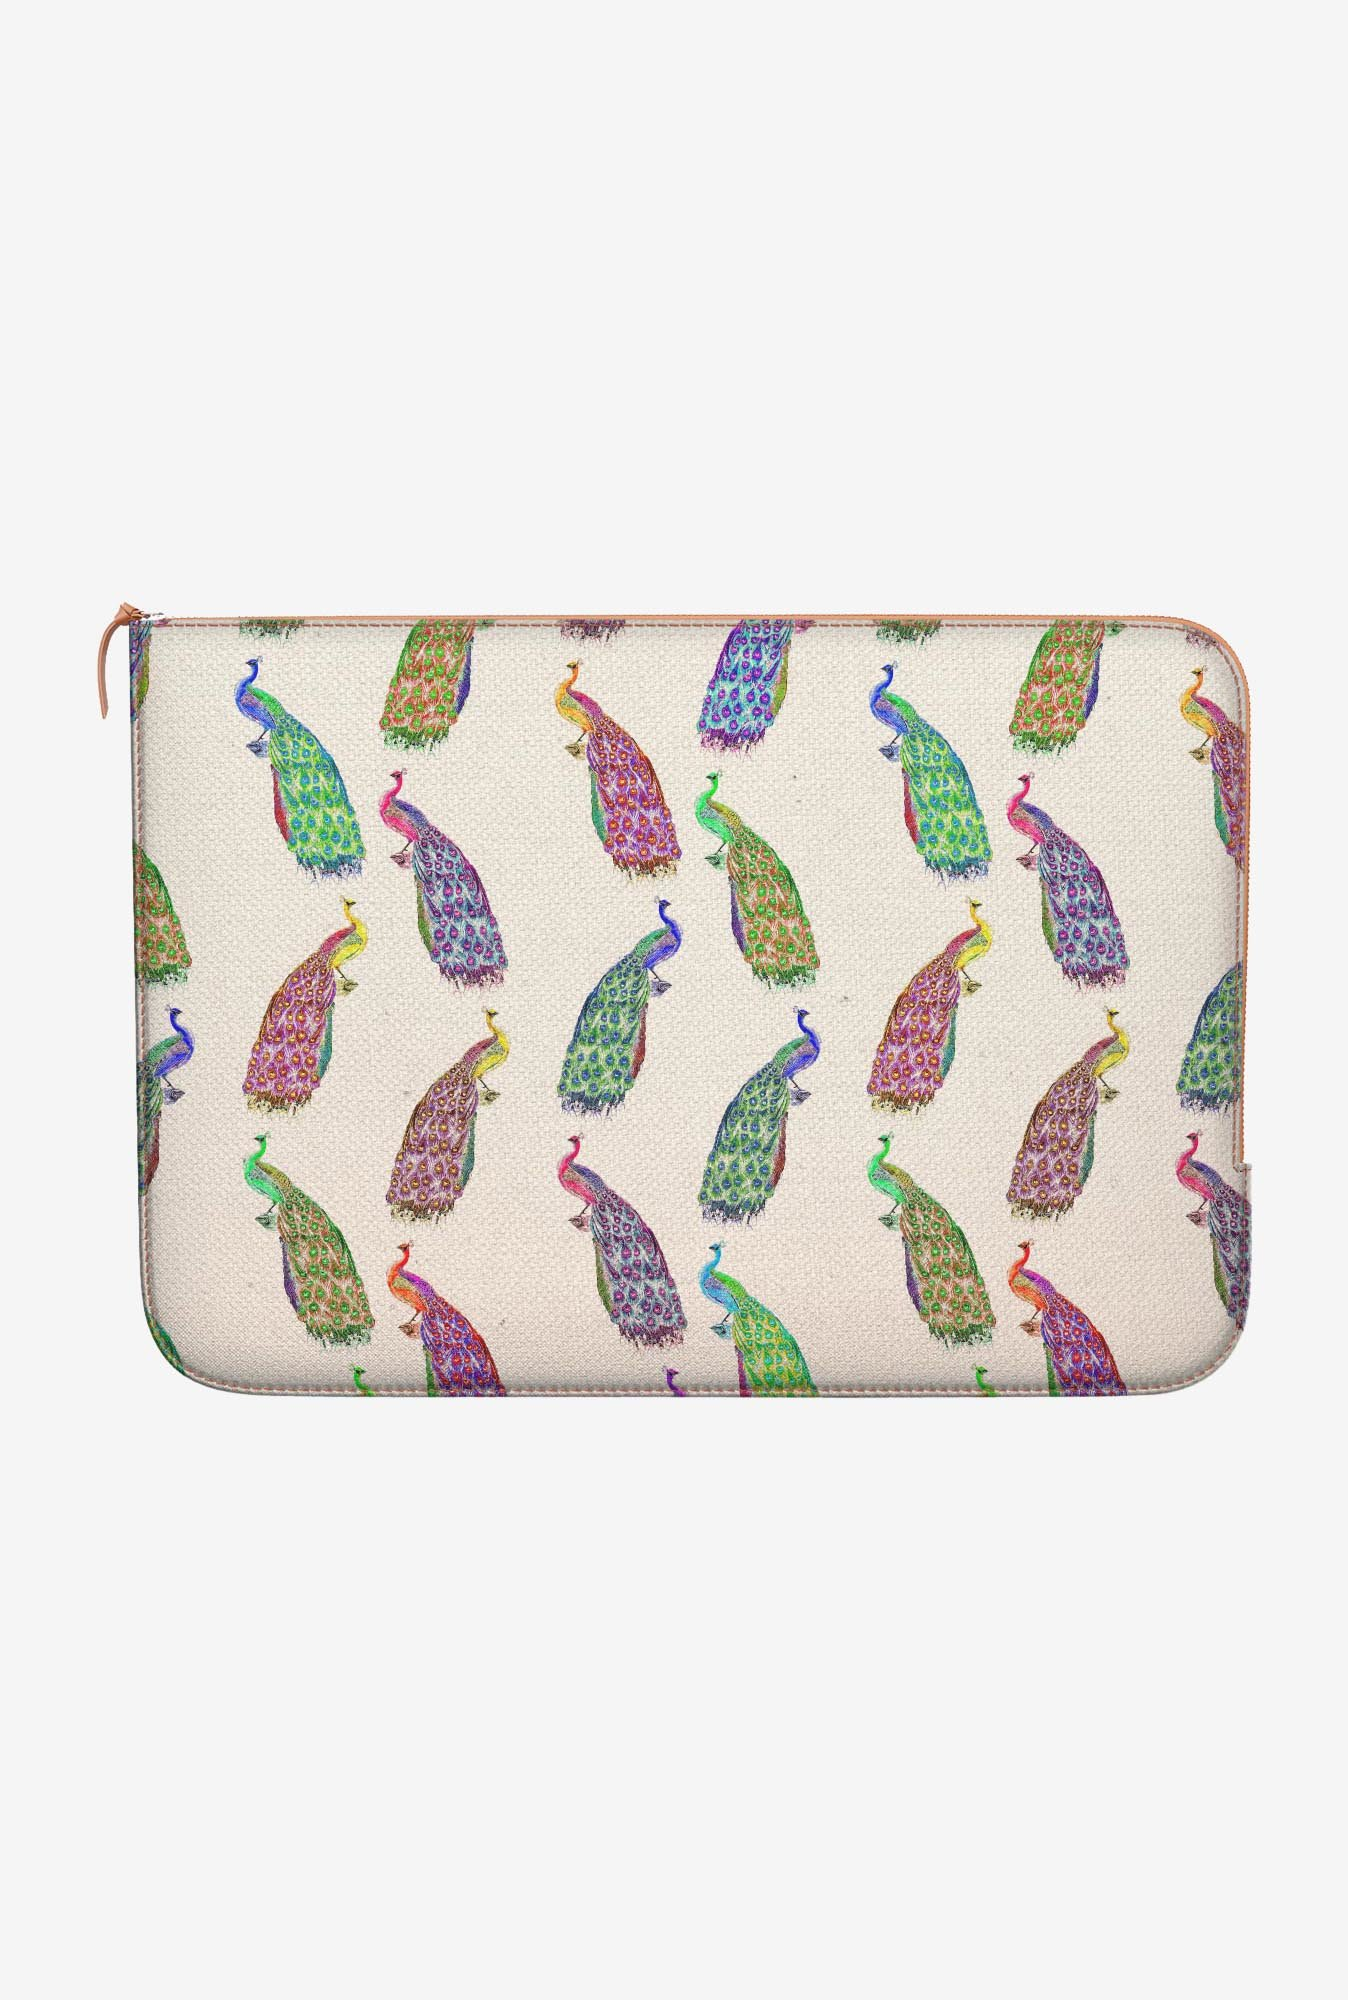 DailyObjects Retro Peacock MacBook Pro 13 Zippered Sleeve